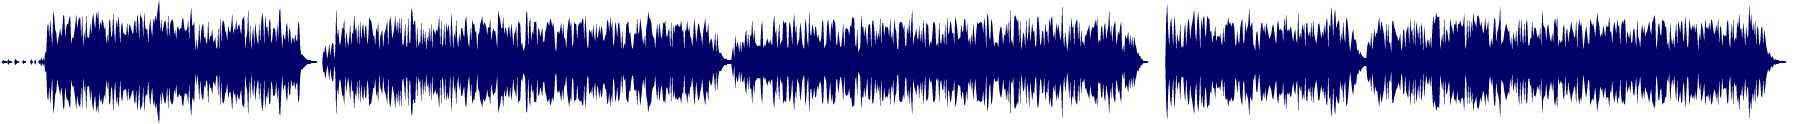 waveform of track #70493